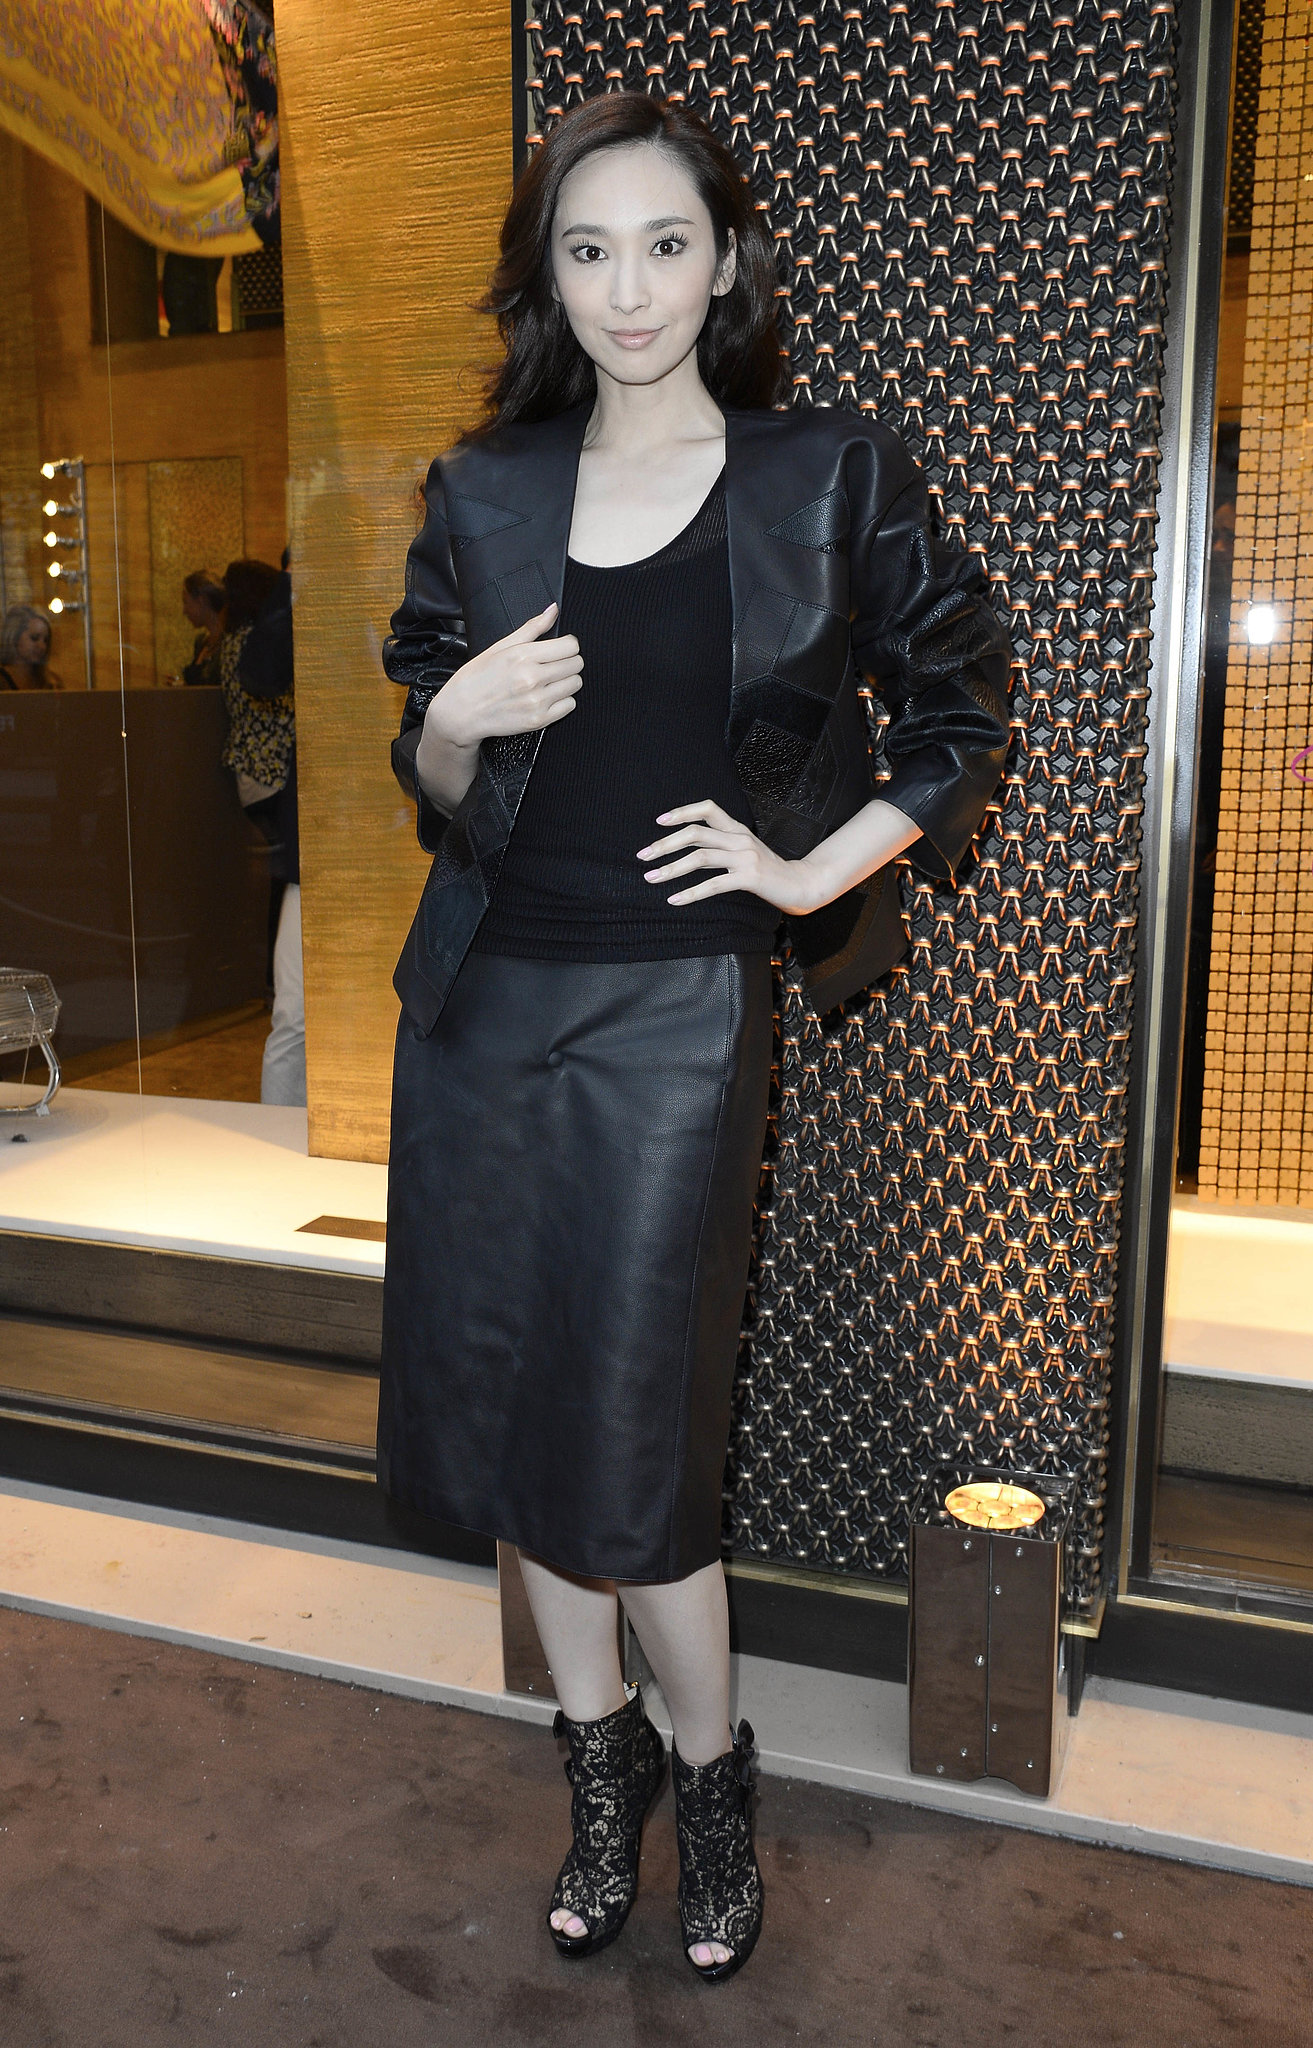 Pace Wu was clad in leather for Loewe's Paris cocktail party. Source: Loewe